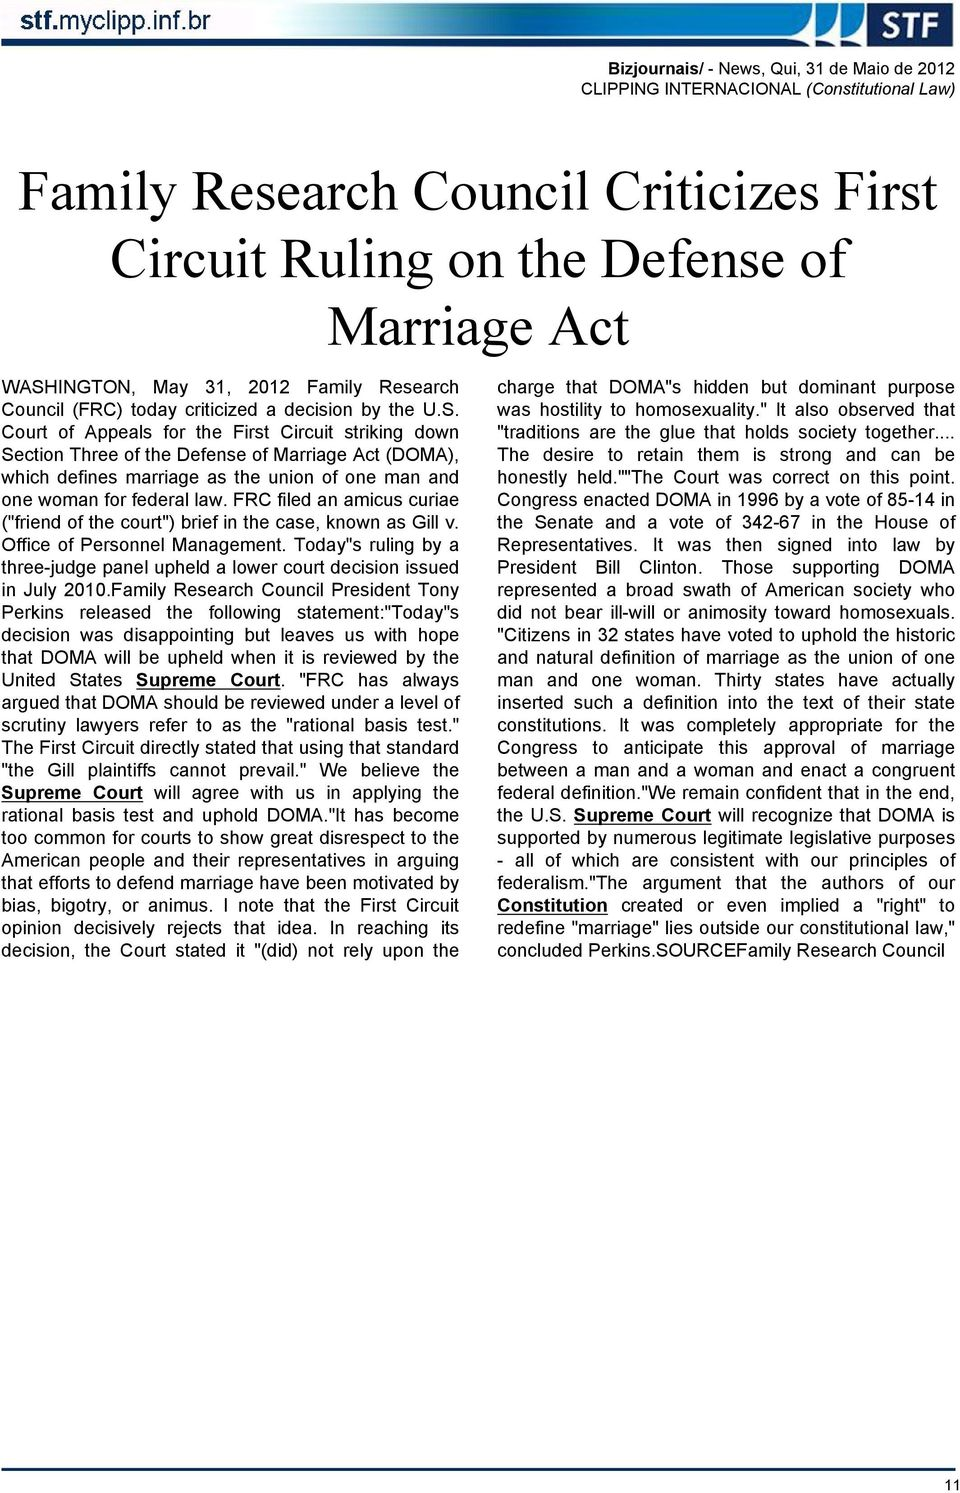 Court of Appeals for the First Circuit striking down Section Three of the Defense of Marriage Act (DOMA), which defines marriage as the union of one man and one woman for federal law.